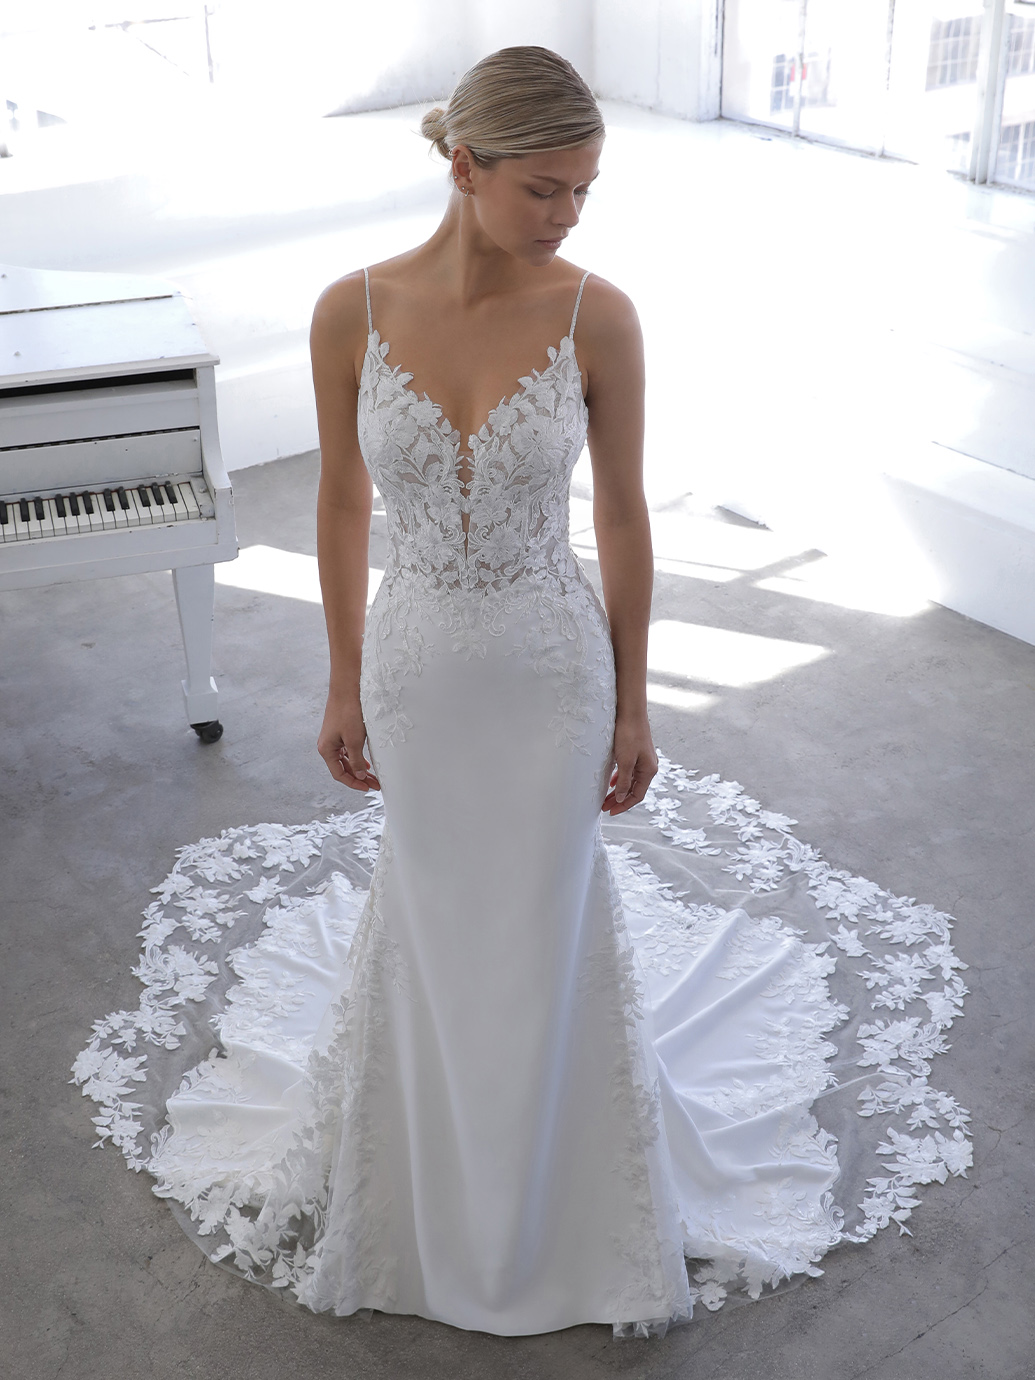 Nigella Blue by Enzoani available at Emily Bridalwear Sheffield